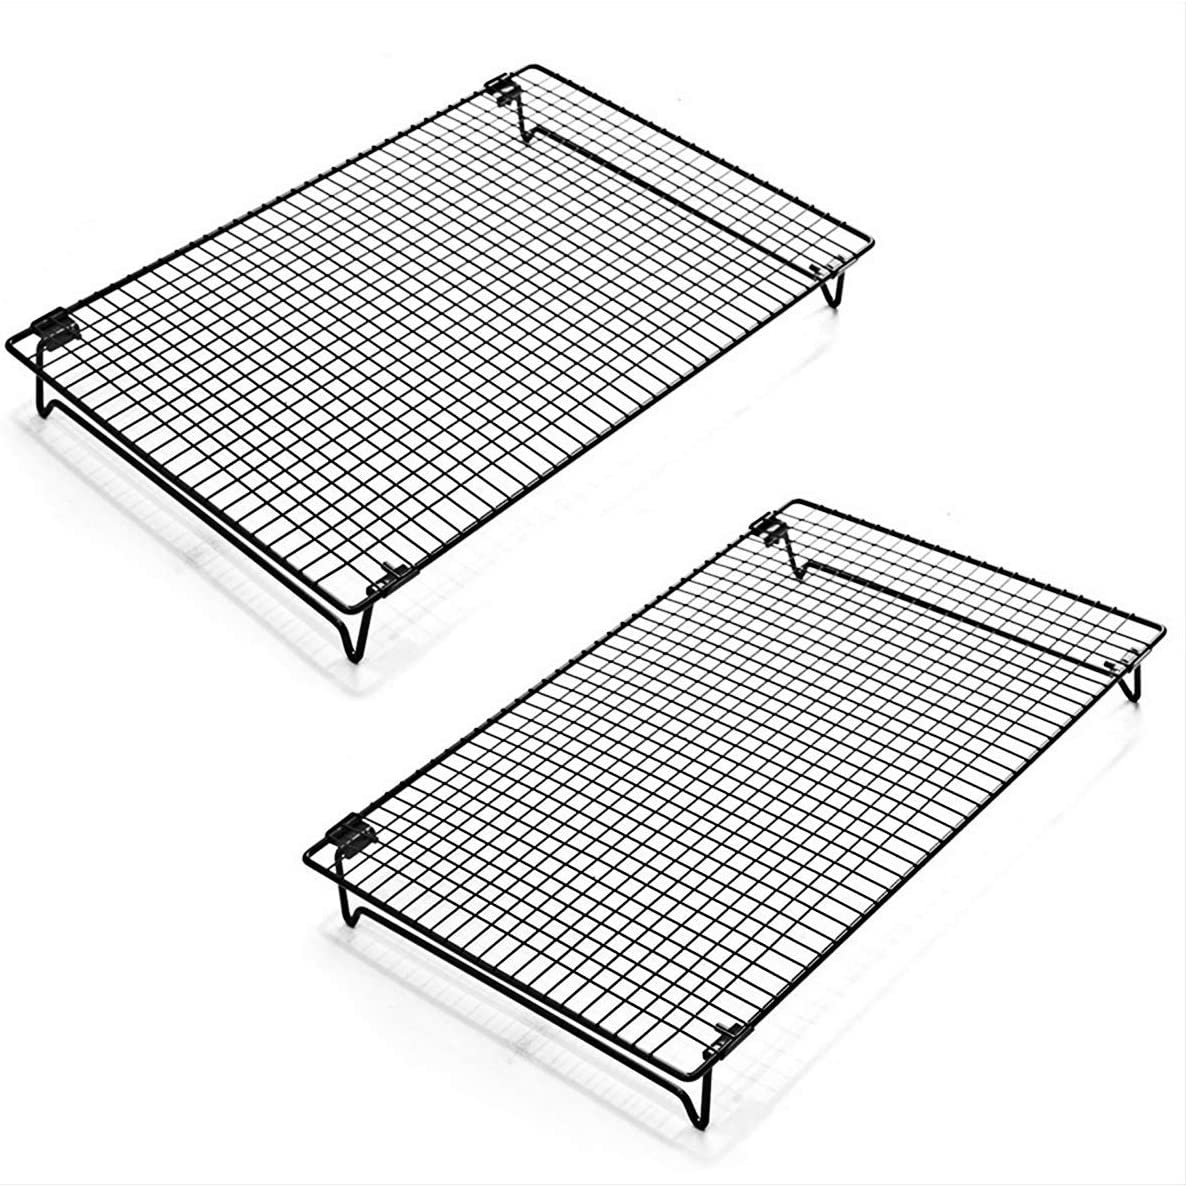 Kingrol 2-Piece Stackable Cooling Rack with Collapsible Folding Legs - for Cooking, Roasting, Drying, Grilling (Black)